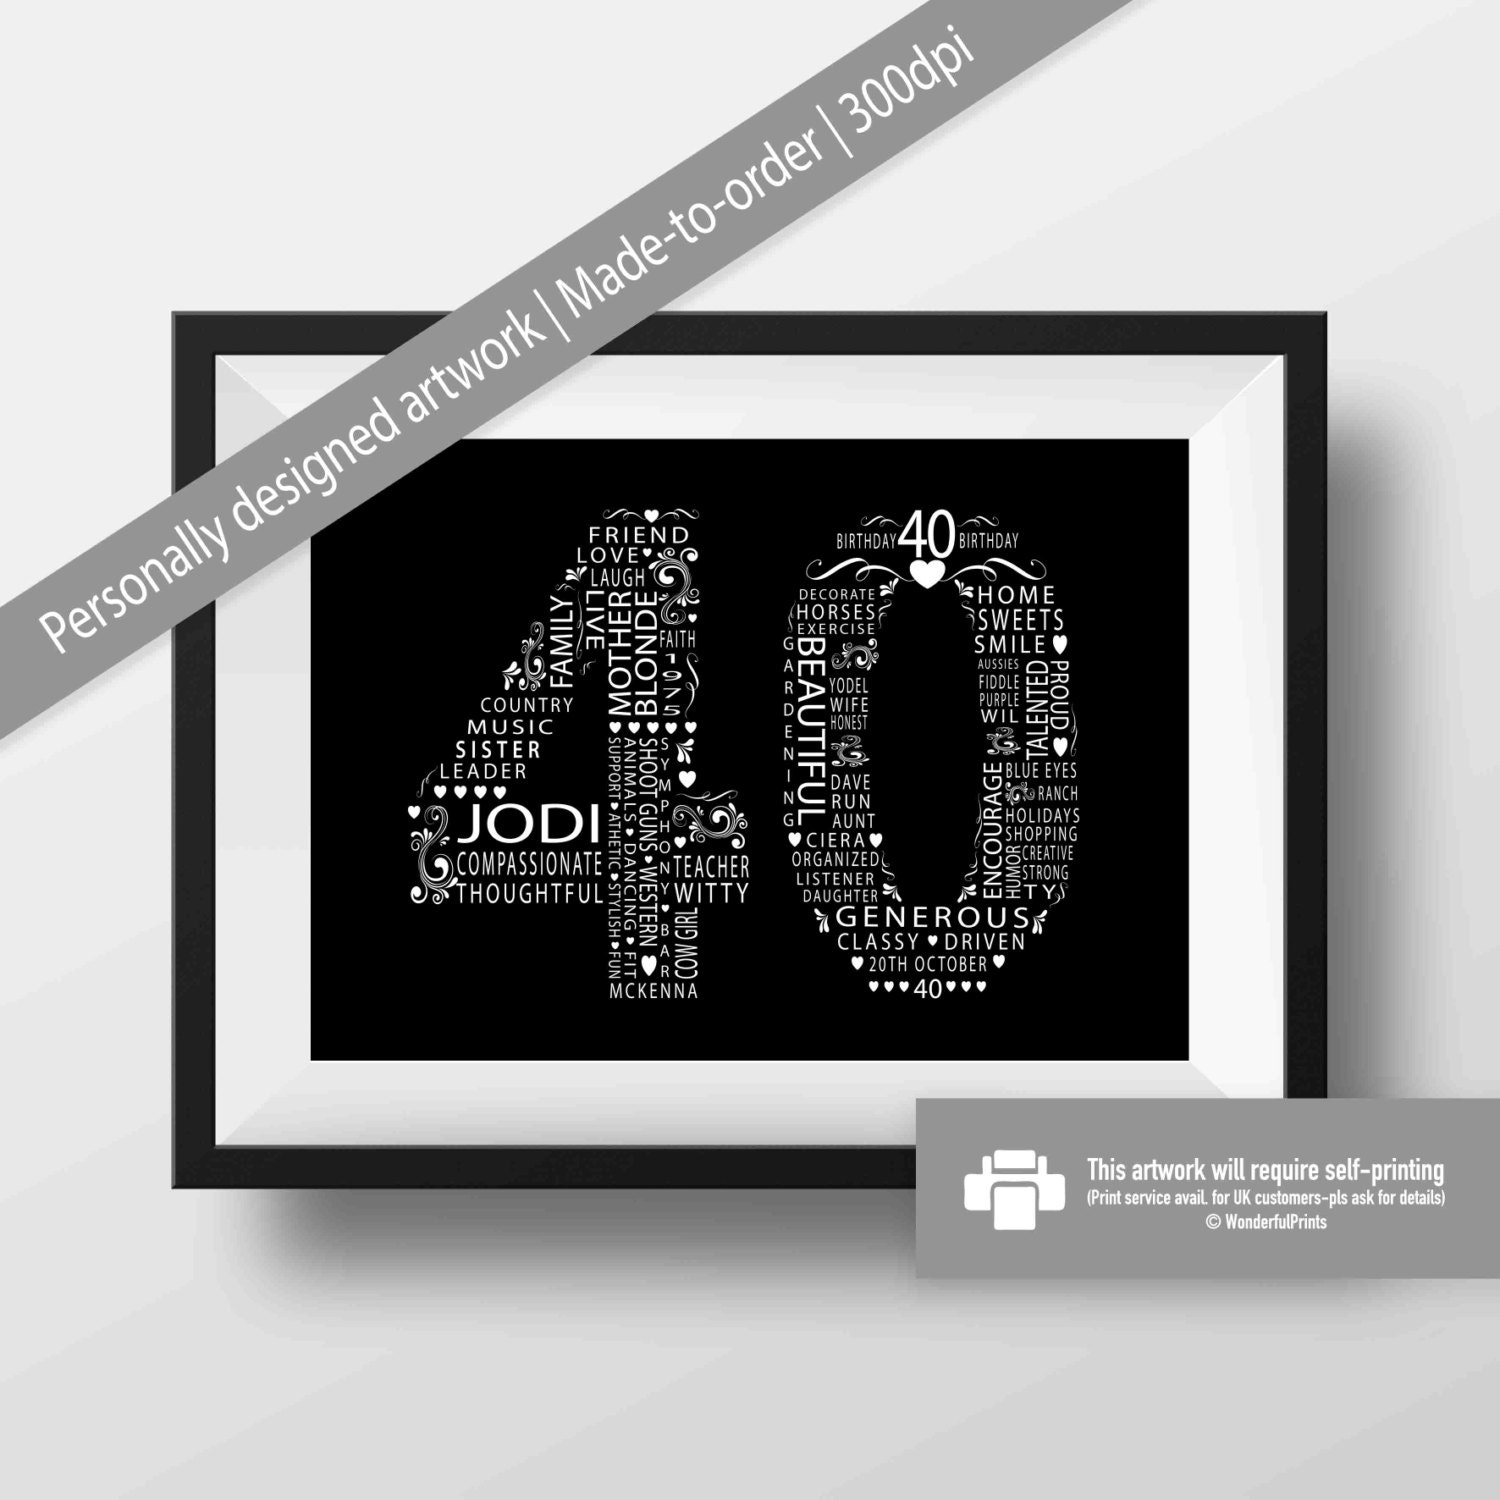 Funny 40th Birthday Gifts Presents For: 40th Birthday Gift For Women / Friend / Mom / Sister